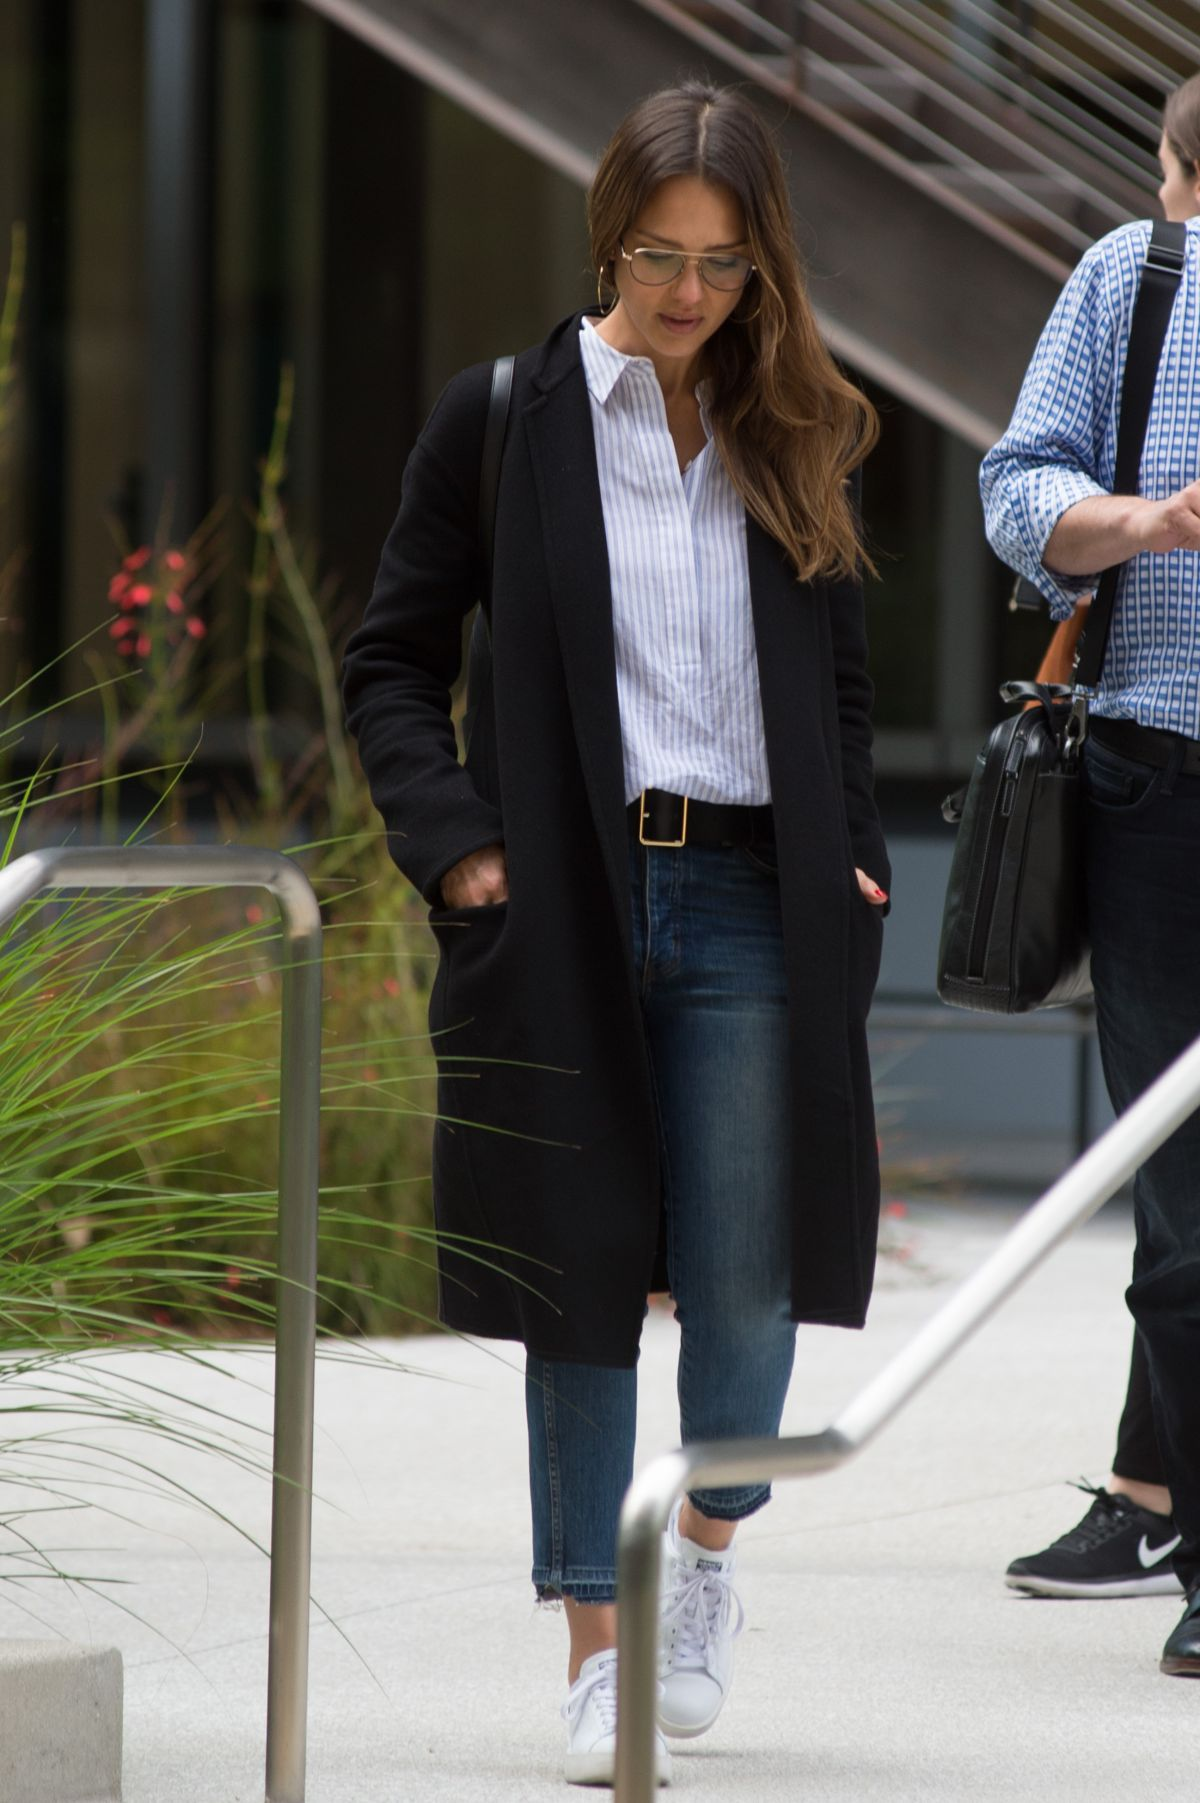 http://www.hawtcelebs.com/wp-content/uploads/2017/05/jessica-alba-leaves-an-office-building-in-los-angeles-05-12-2017_8.jpg